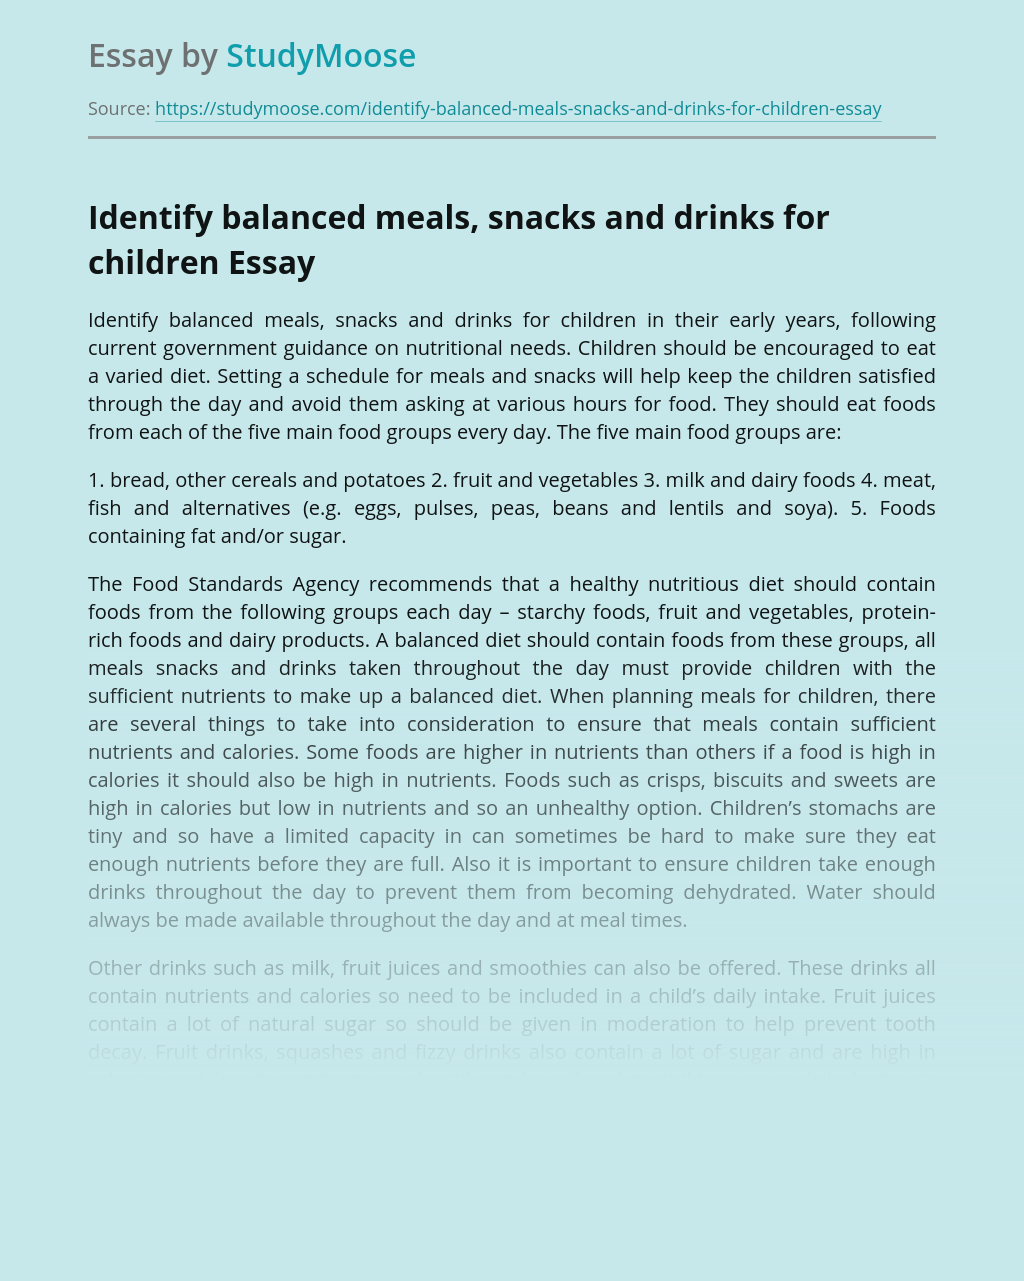 Identify balanced meals, snacks and drinks for children